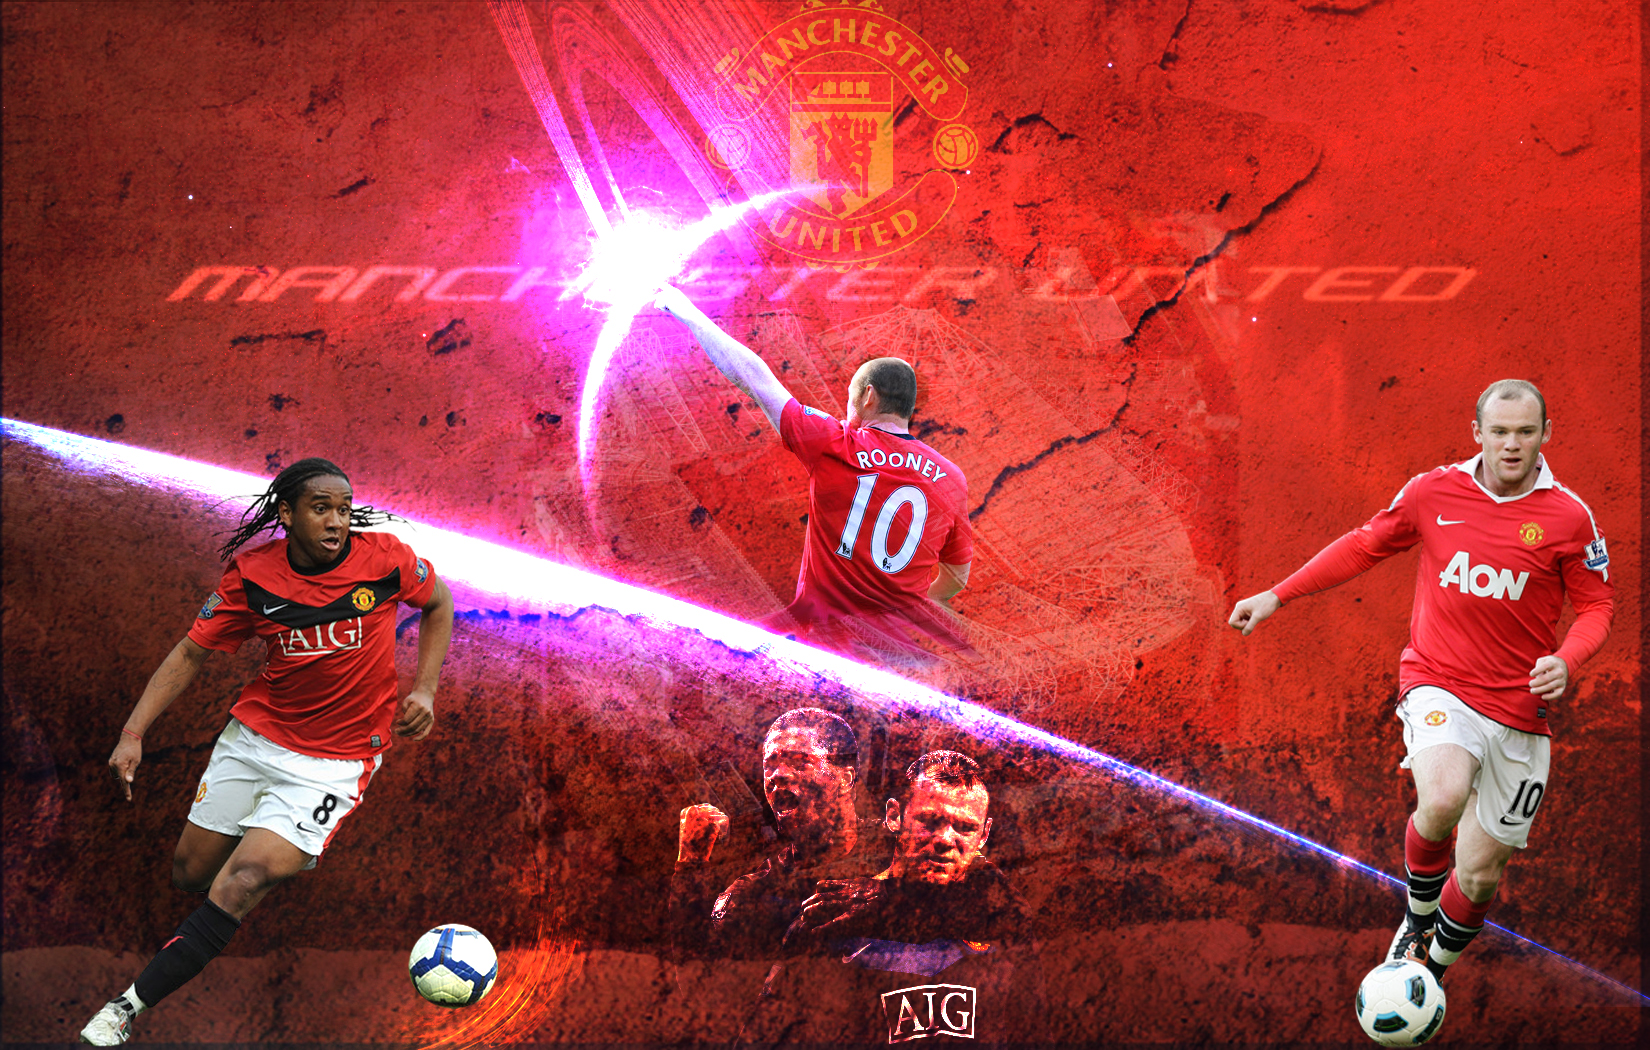 Manchester United 1680x1050 010